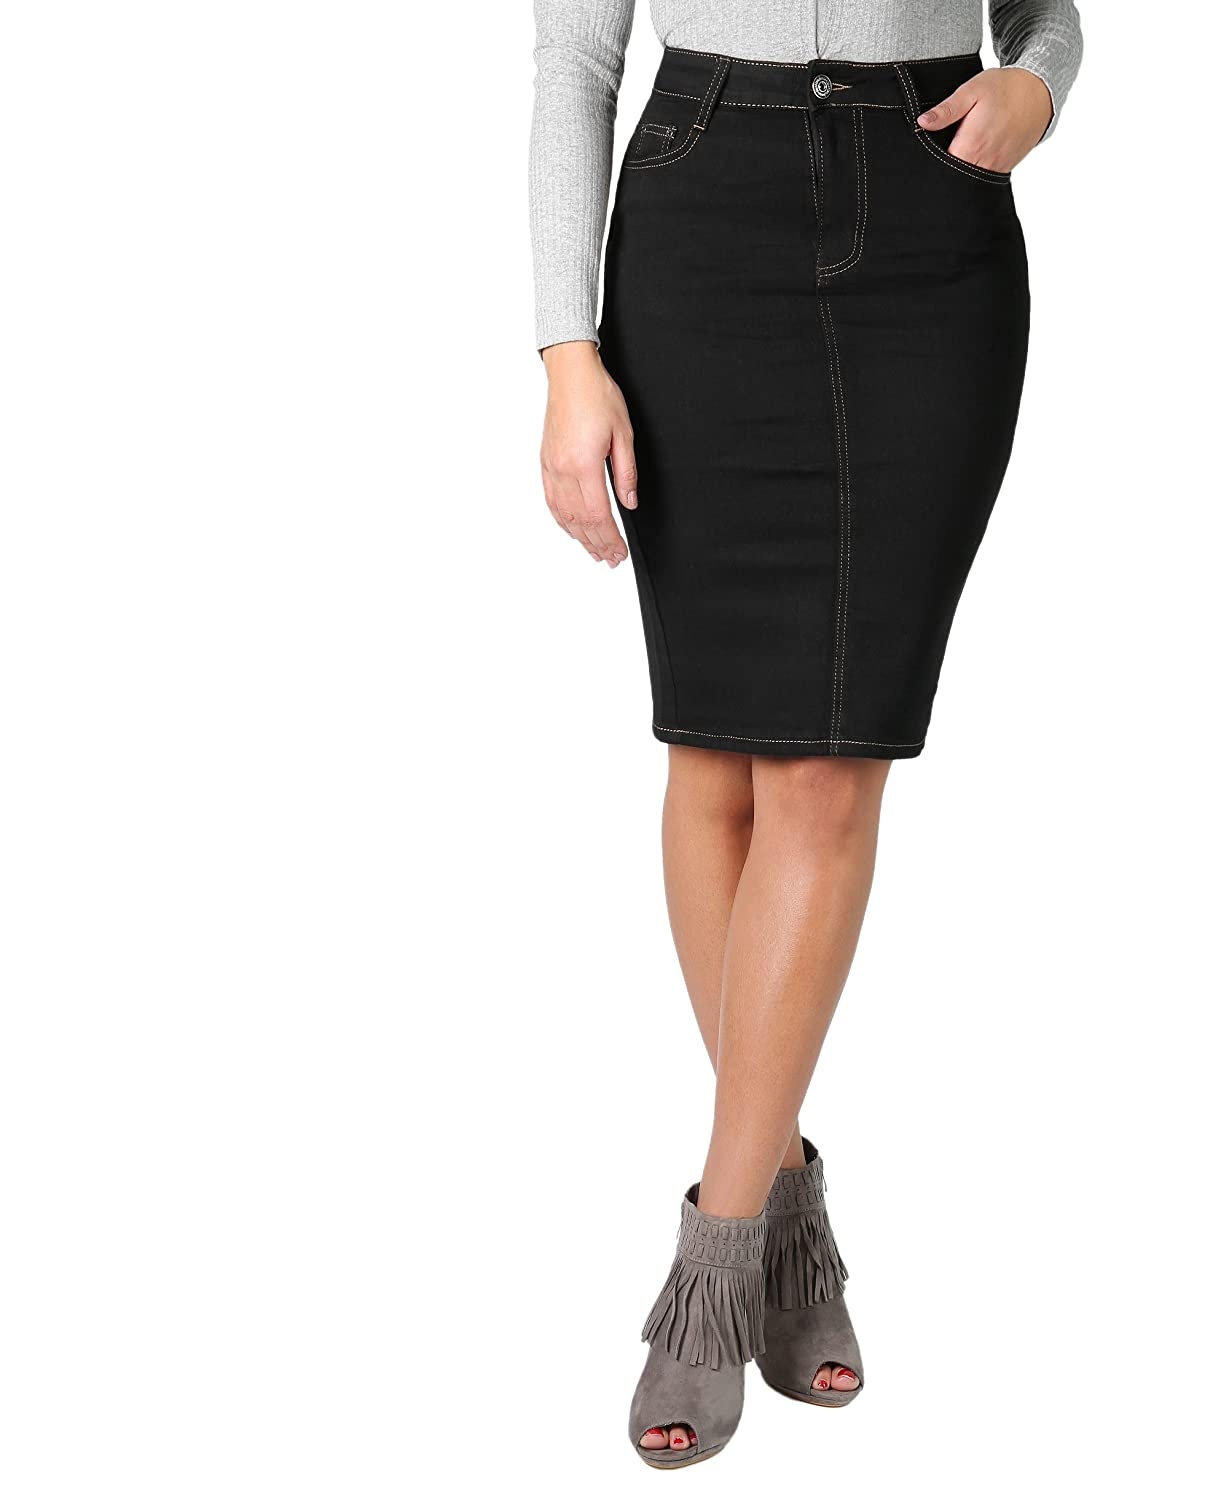 KRISP Womens Denim Pencil Pull On Fitted Stretch Waistband Midi Knee Skirt Plus Size 2117 2118